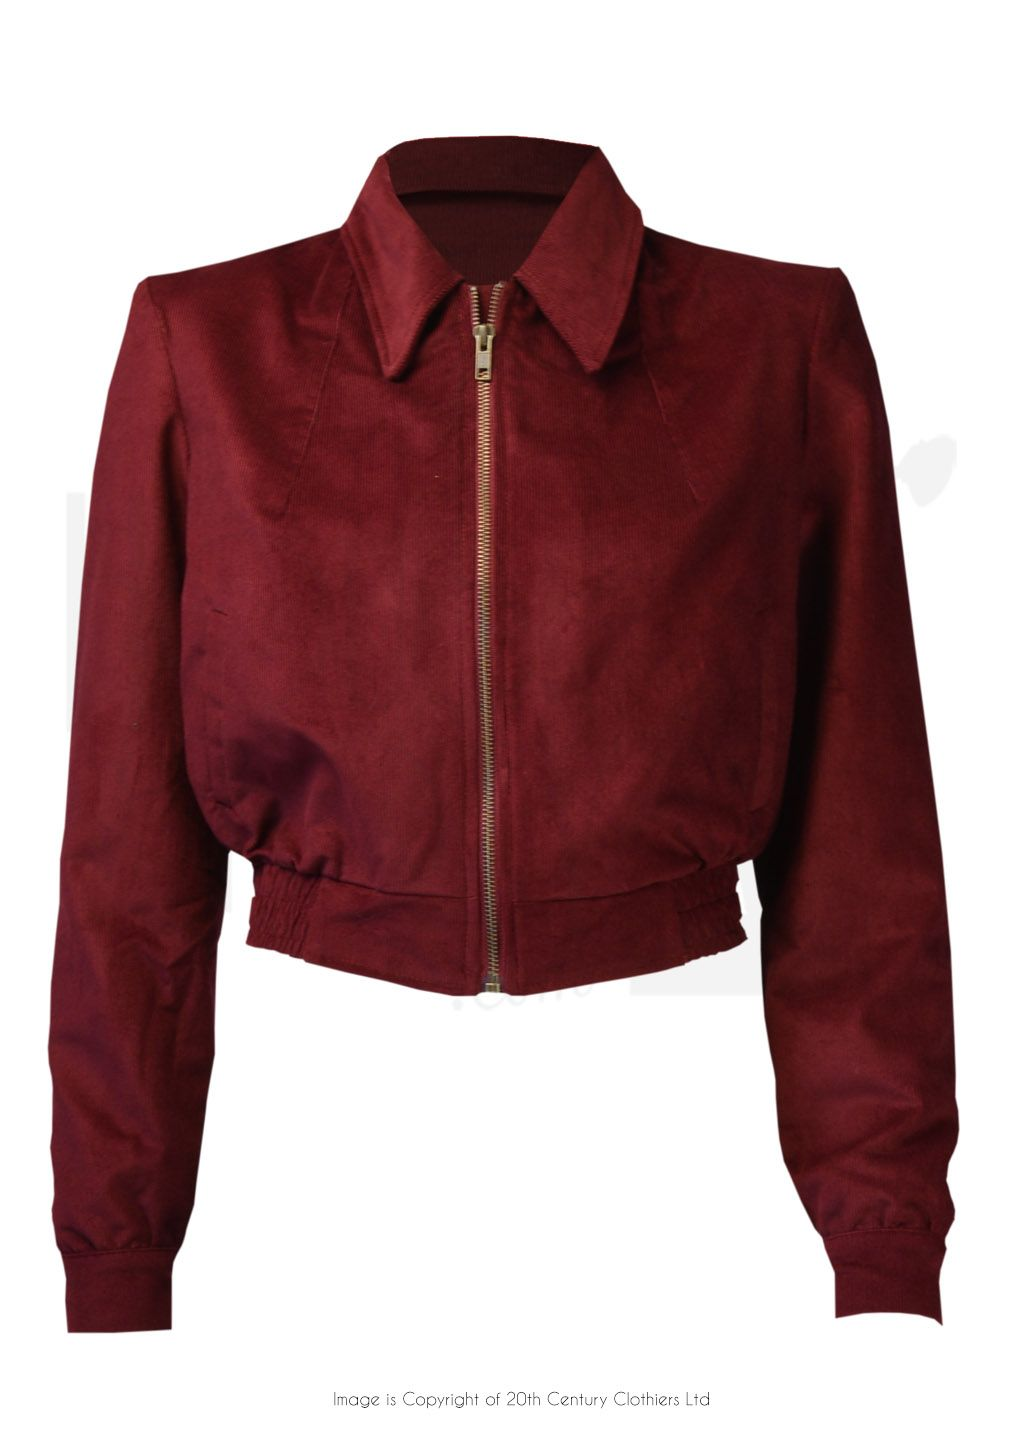 21fe082ad7aa 1940s Style Americana Zip-through Jacket in Wine Red Needlecord